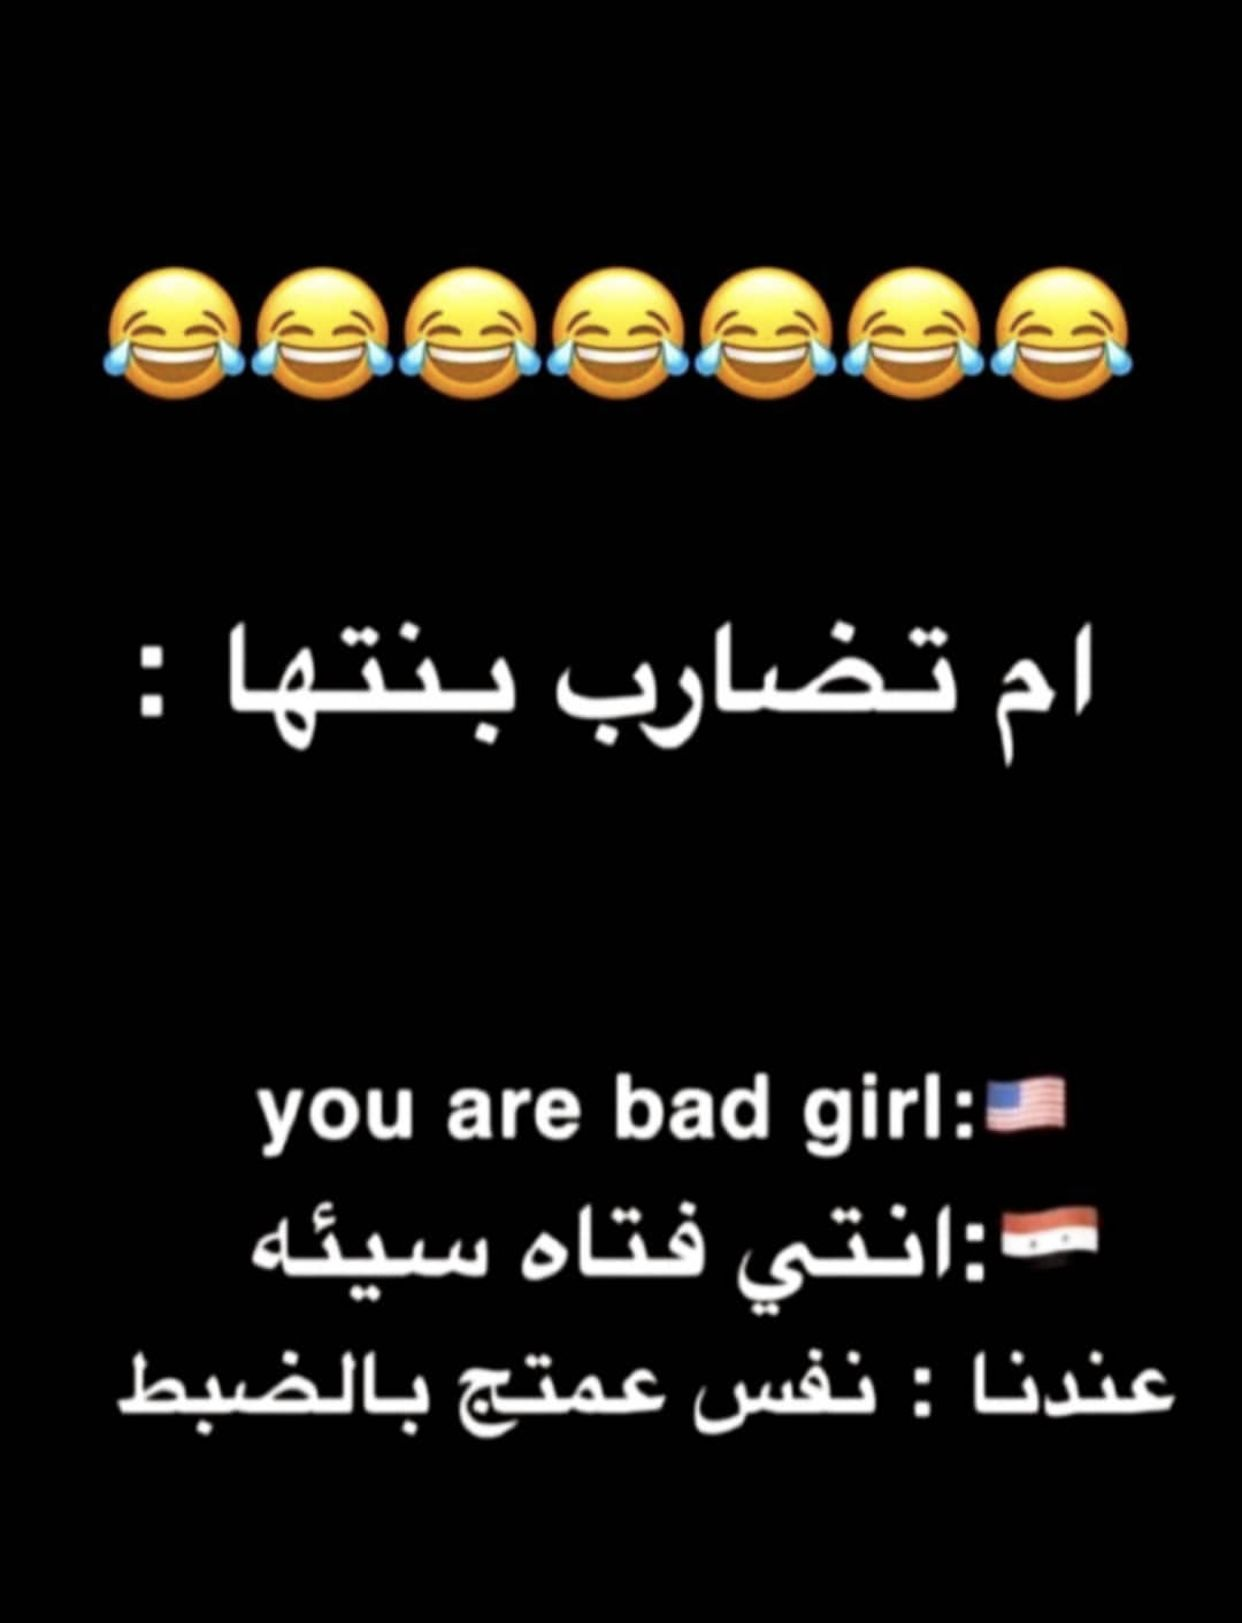 Pin By Mم On نكت Funny Study Quotes Jokes Quotes Movie Quotes Funny